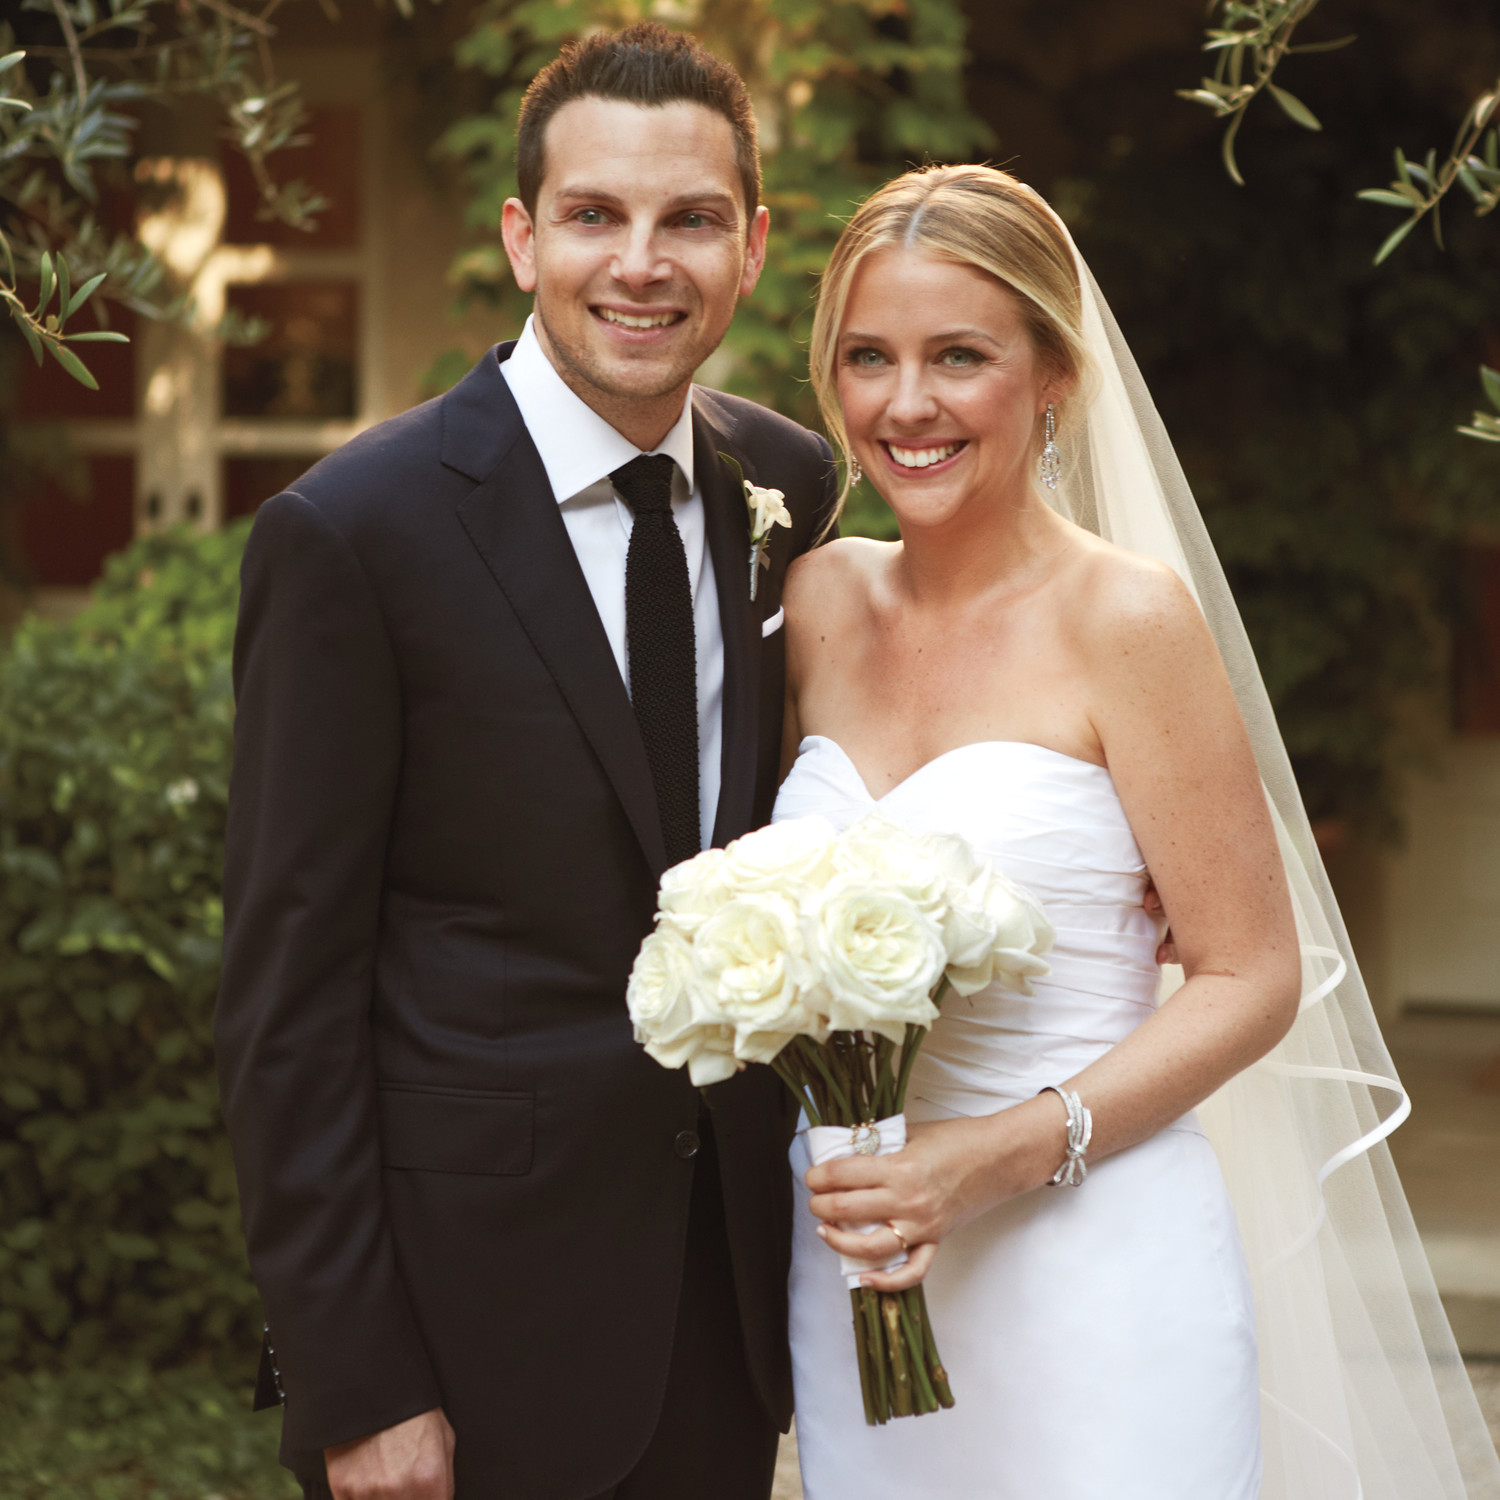 Celebrity Wedding Etiquette: A Formal Wedding At Home In California